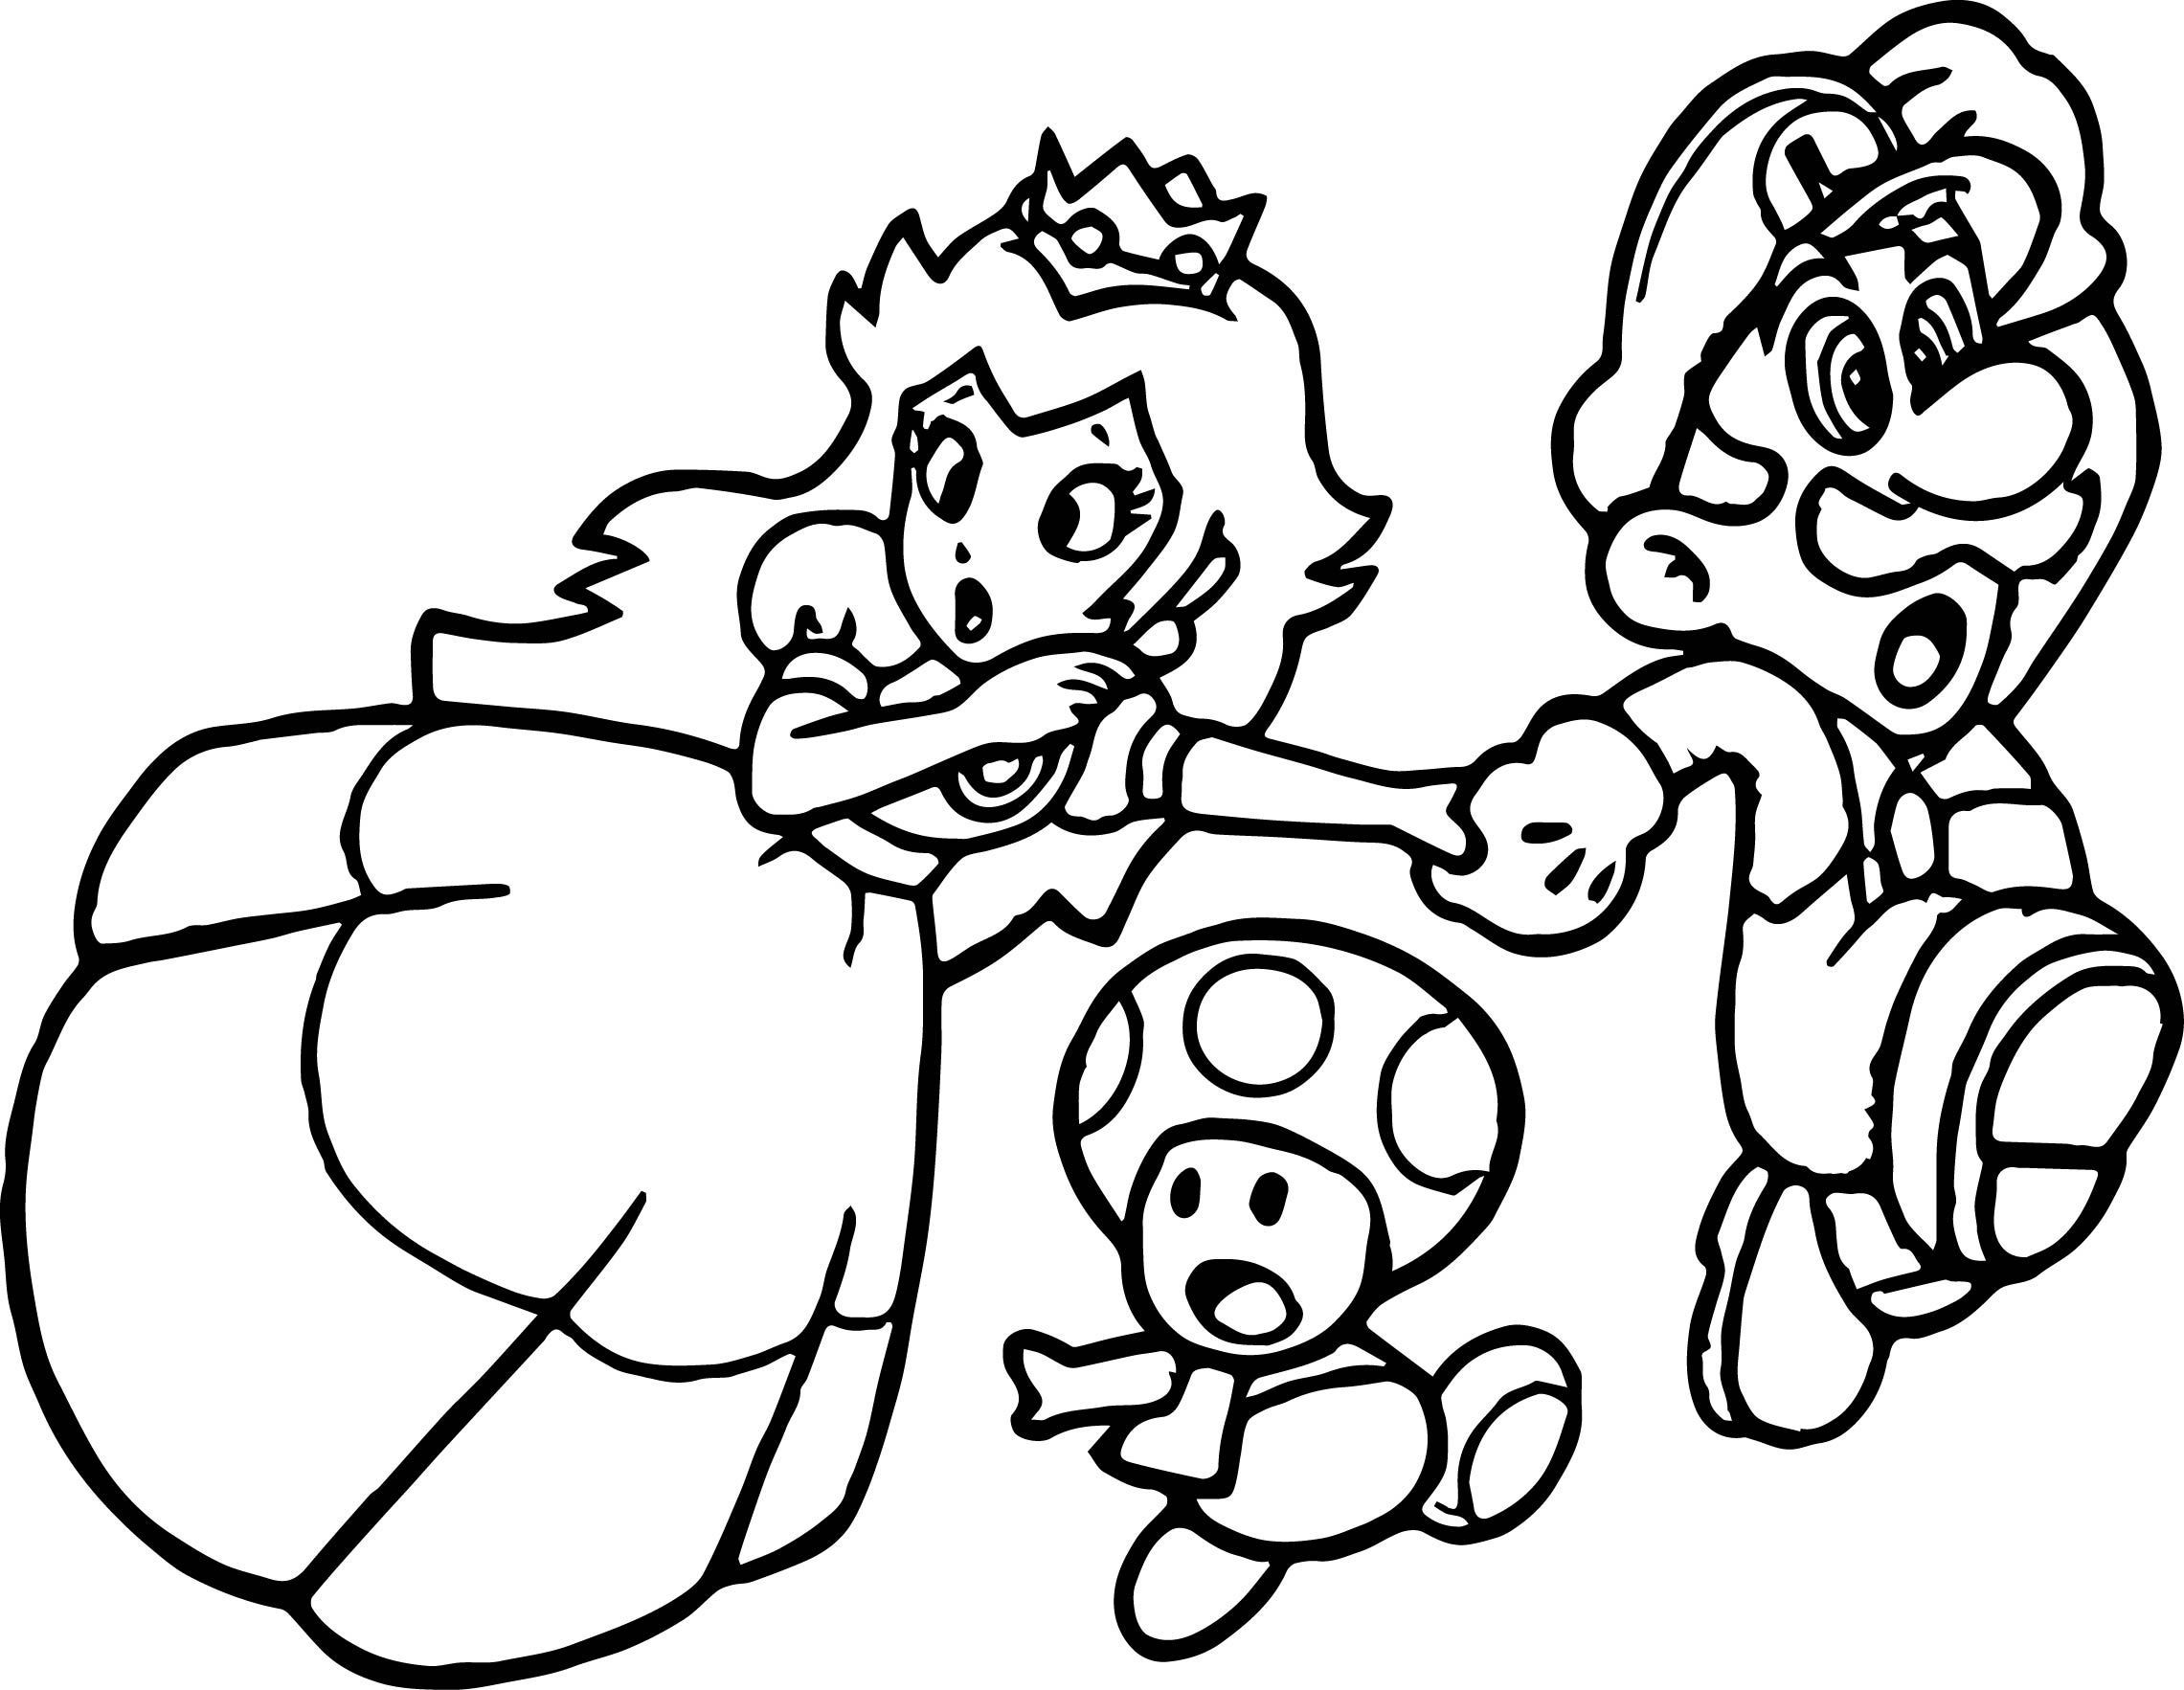 Super Mario Princess Peach Coloring Pages To Print Super Mario Desenhos Para Colorir Colorir